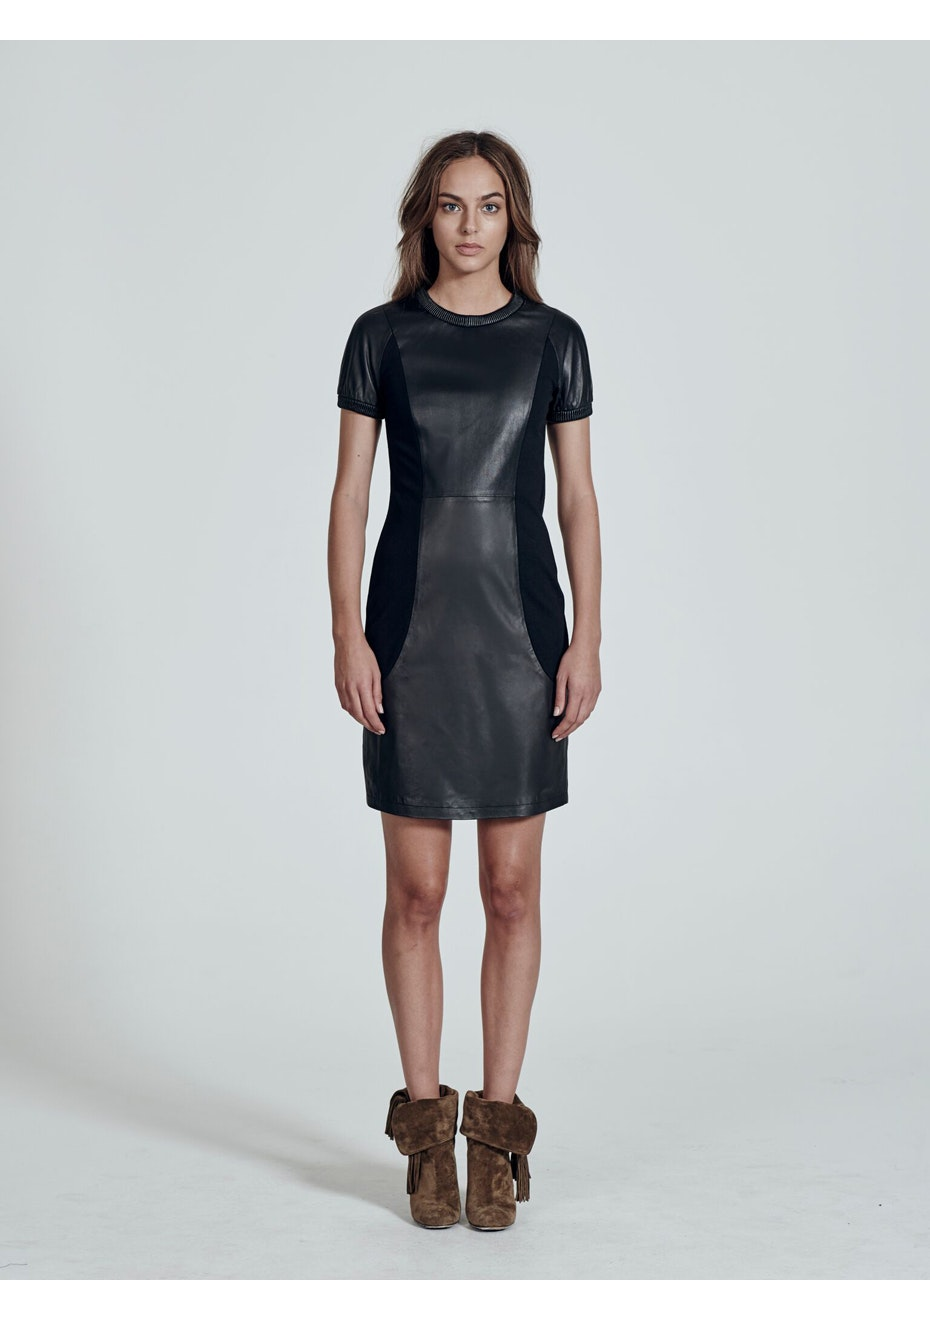 West 14th - The Hearst Building Leather Dress - Black